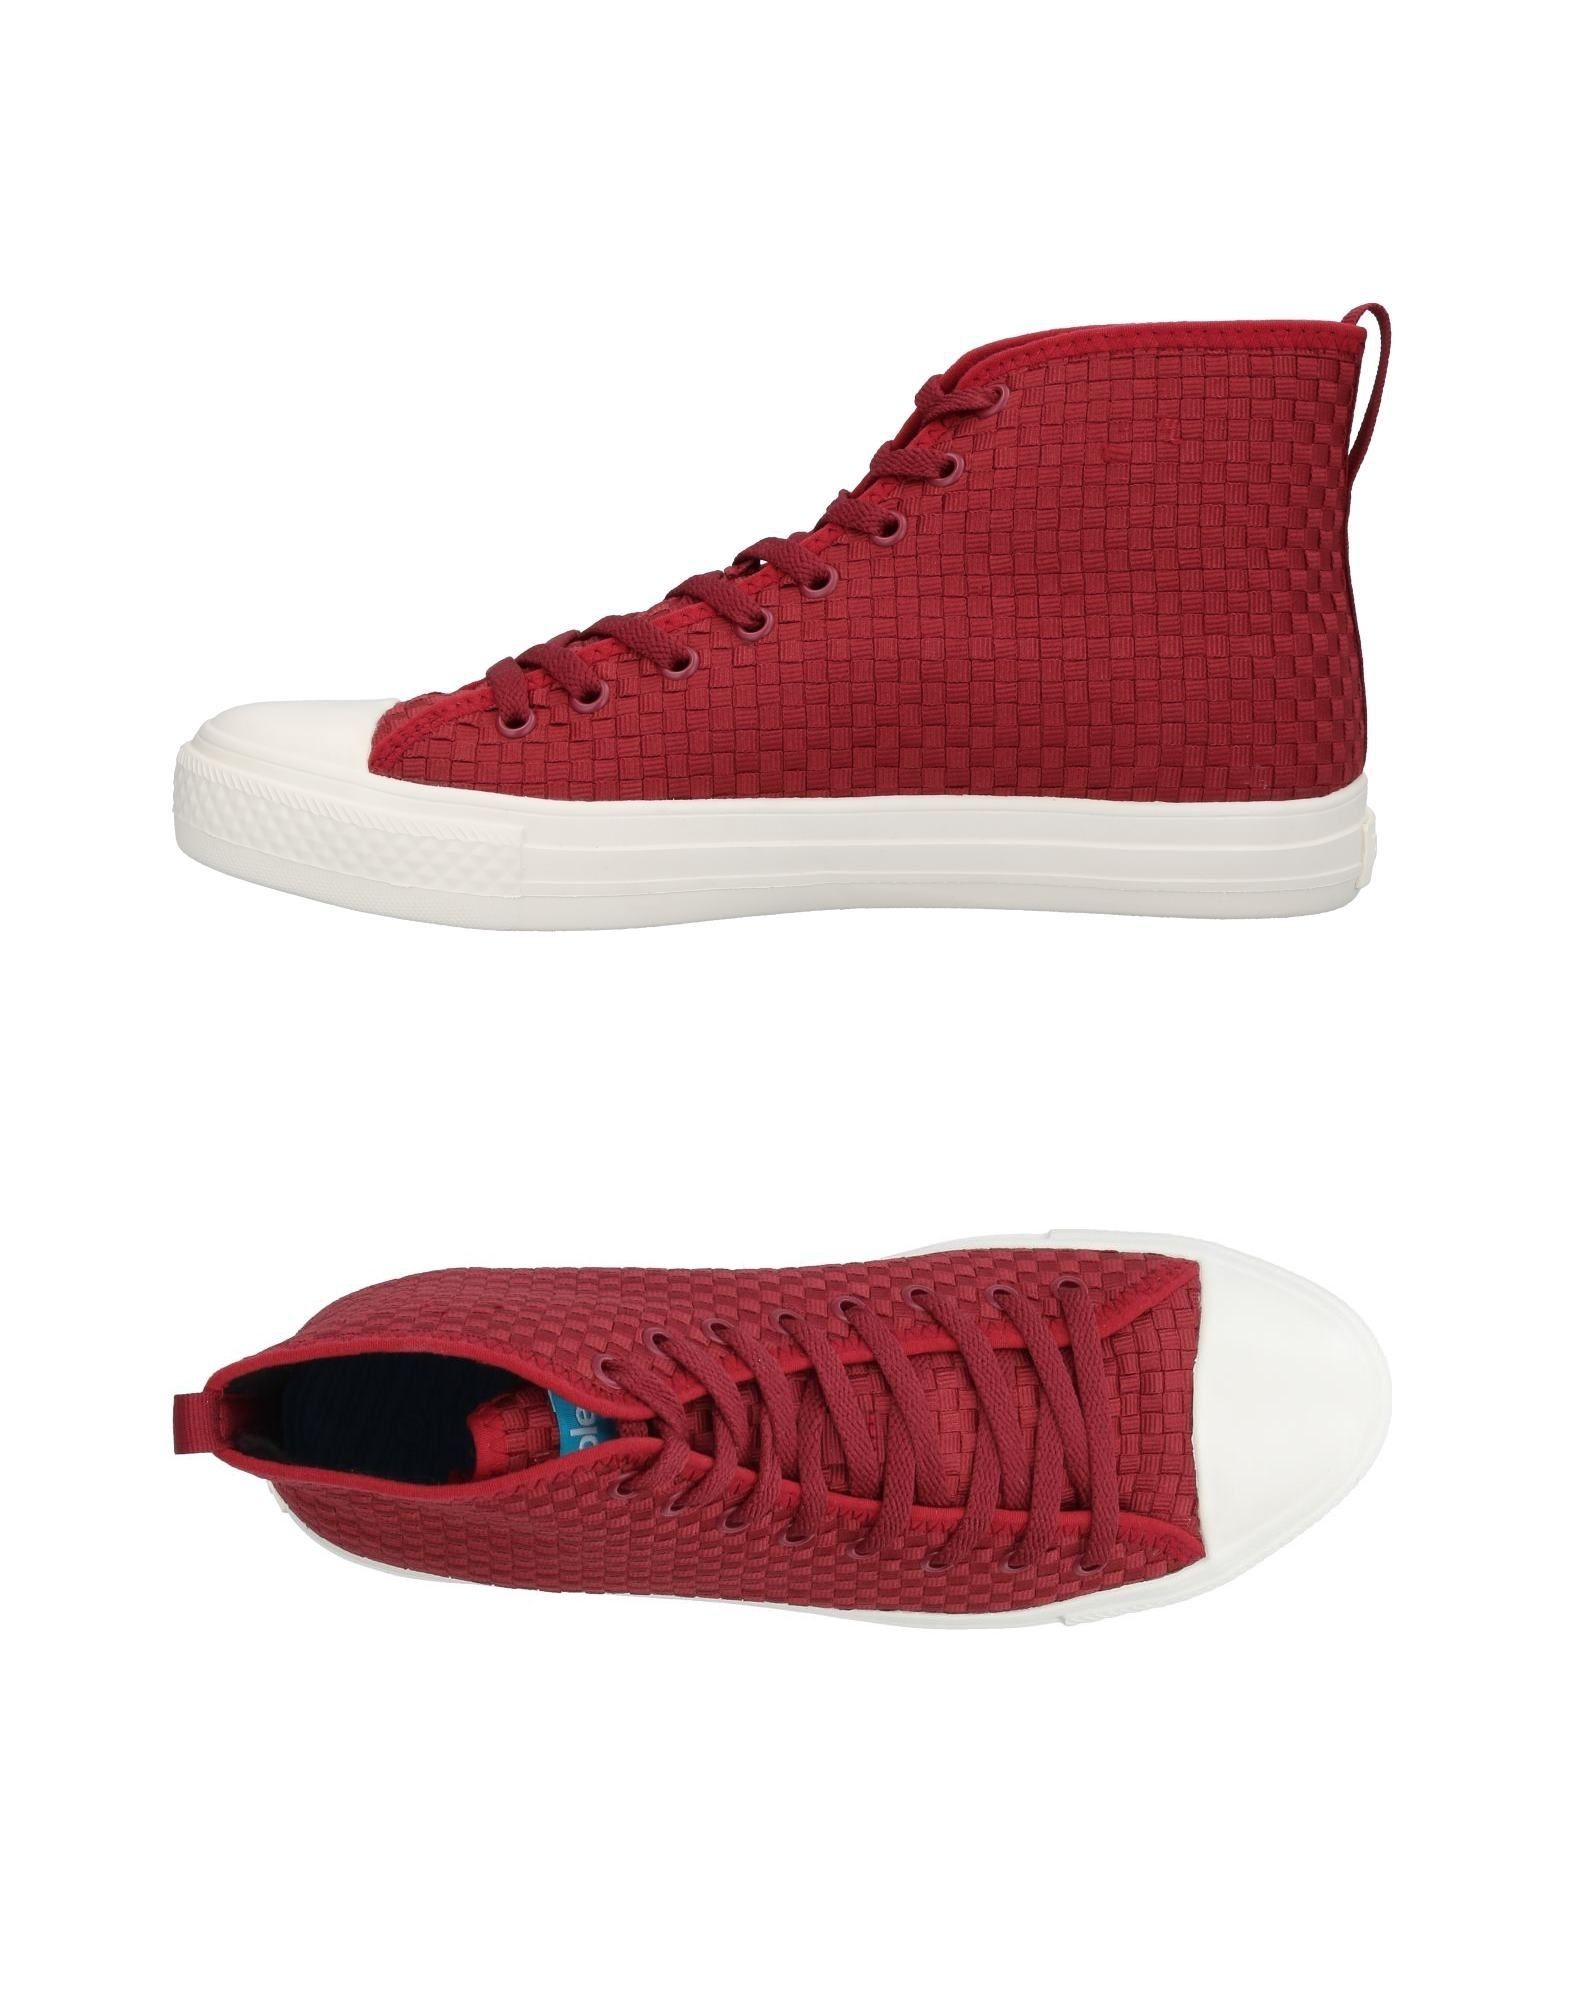 PEOPLE FOOTWEAR Sneakers in Maroon